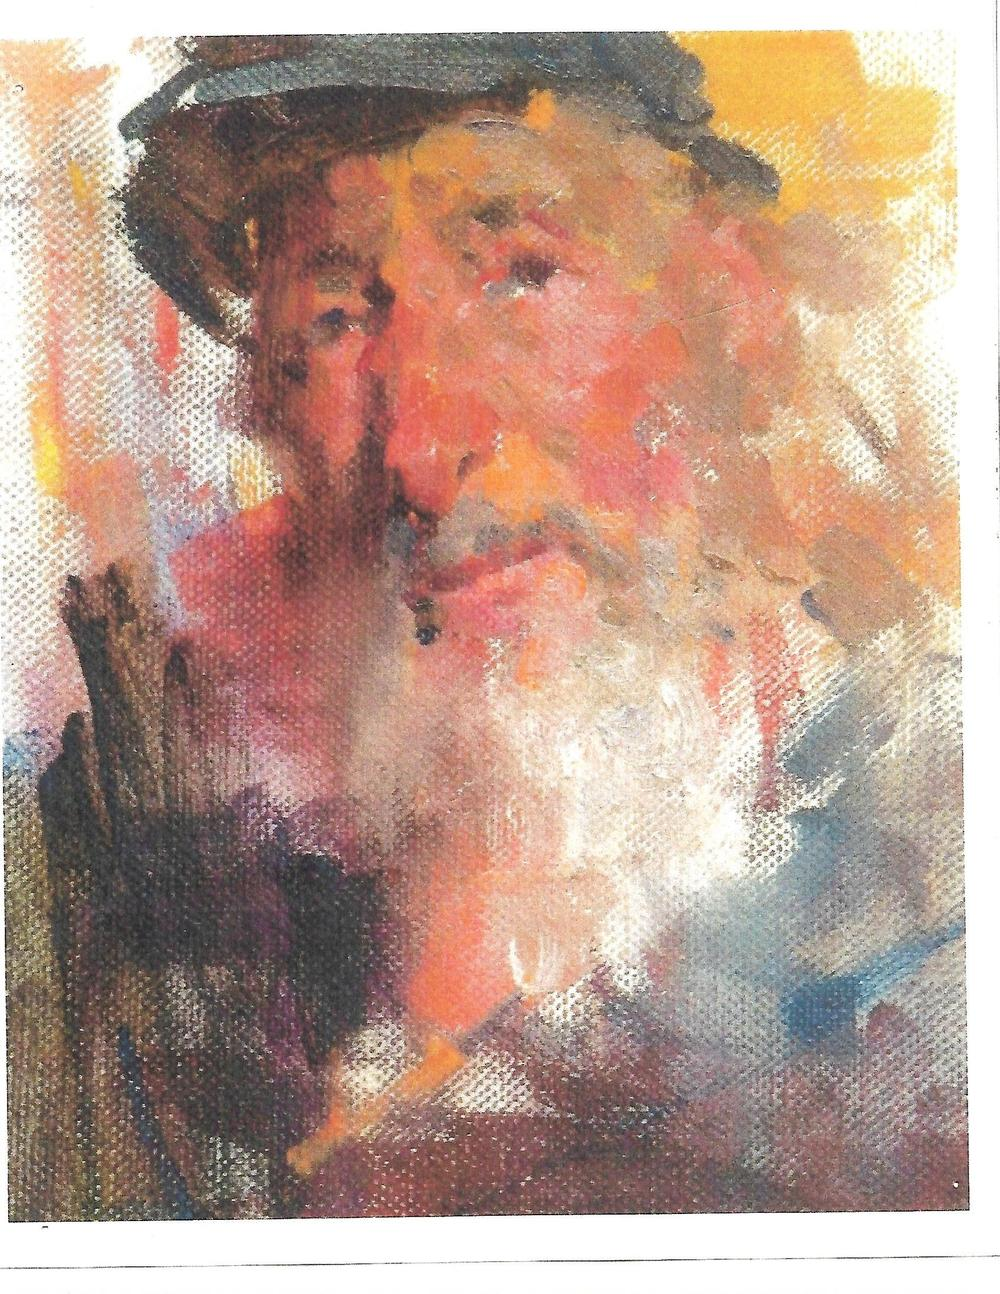 Portrait of Larry Moyer by an unknown artist Courtesy of Bill Kirsch